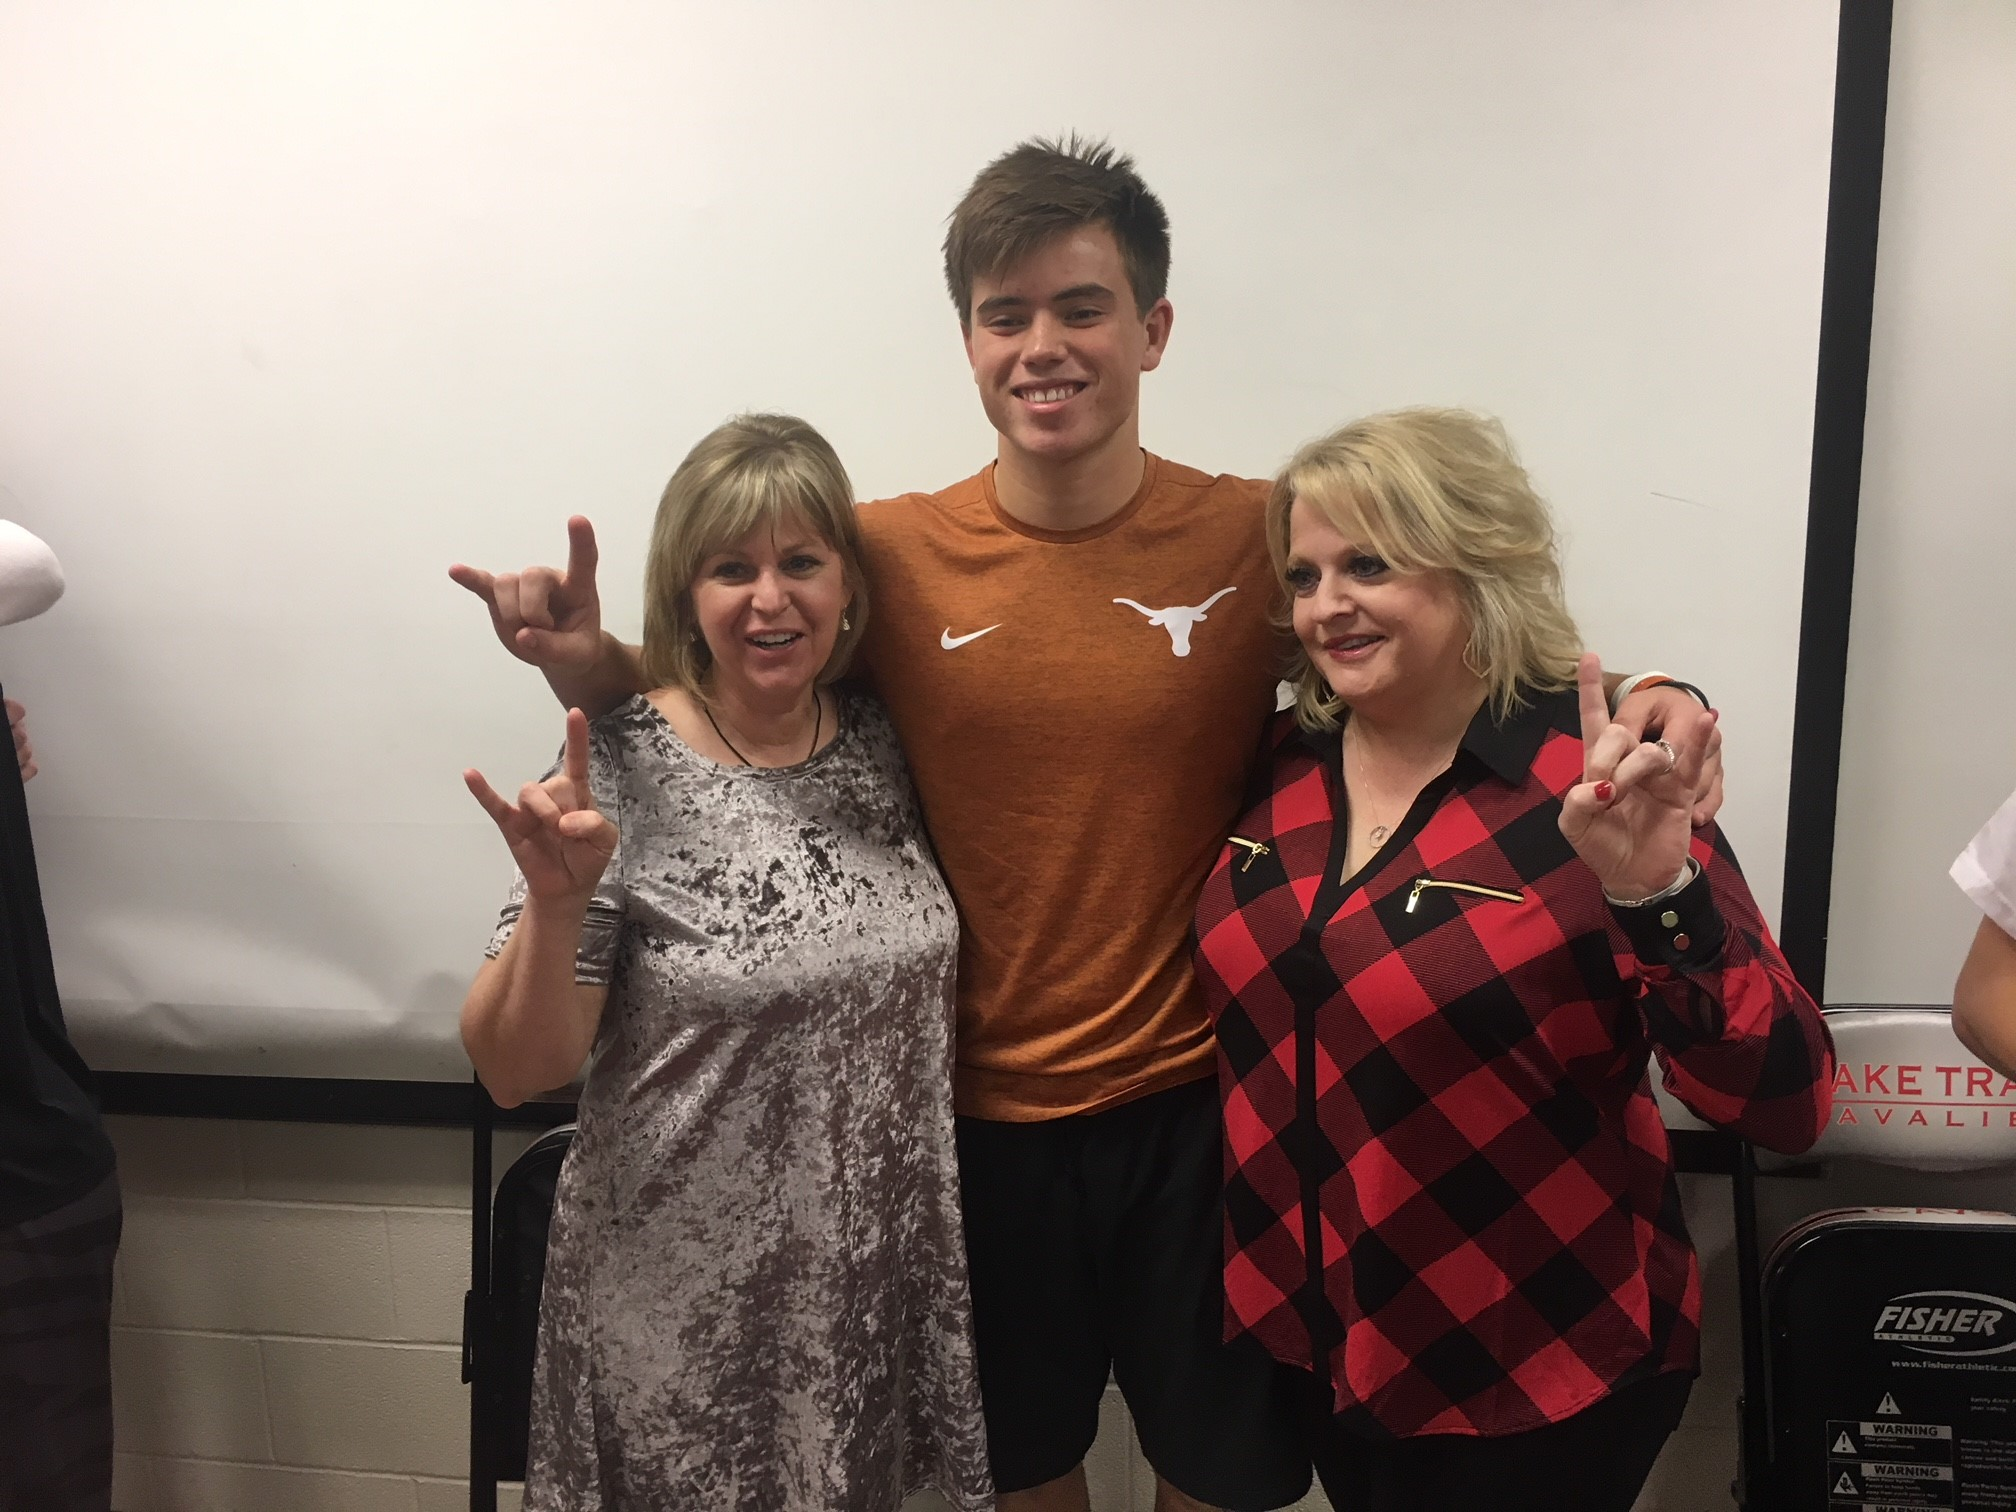 Lake Travis High athlete Cameron Dicker signs his letter of intent with the University of Texas at Austin on Dec. 21, 2017. (KXAN Photo/Todd Bynum)